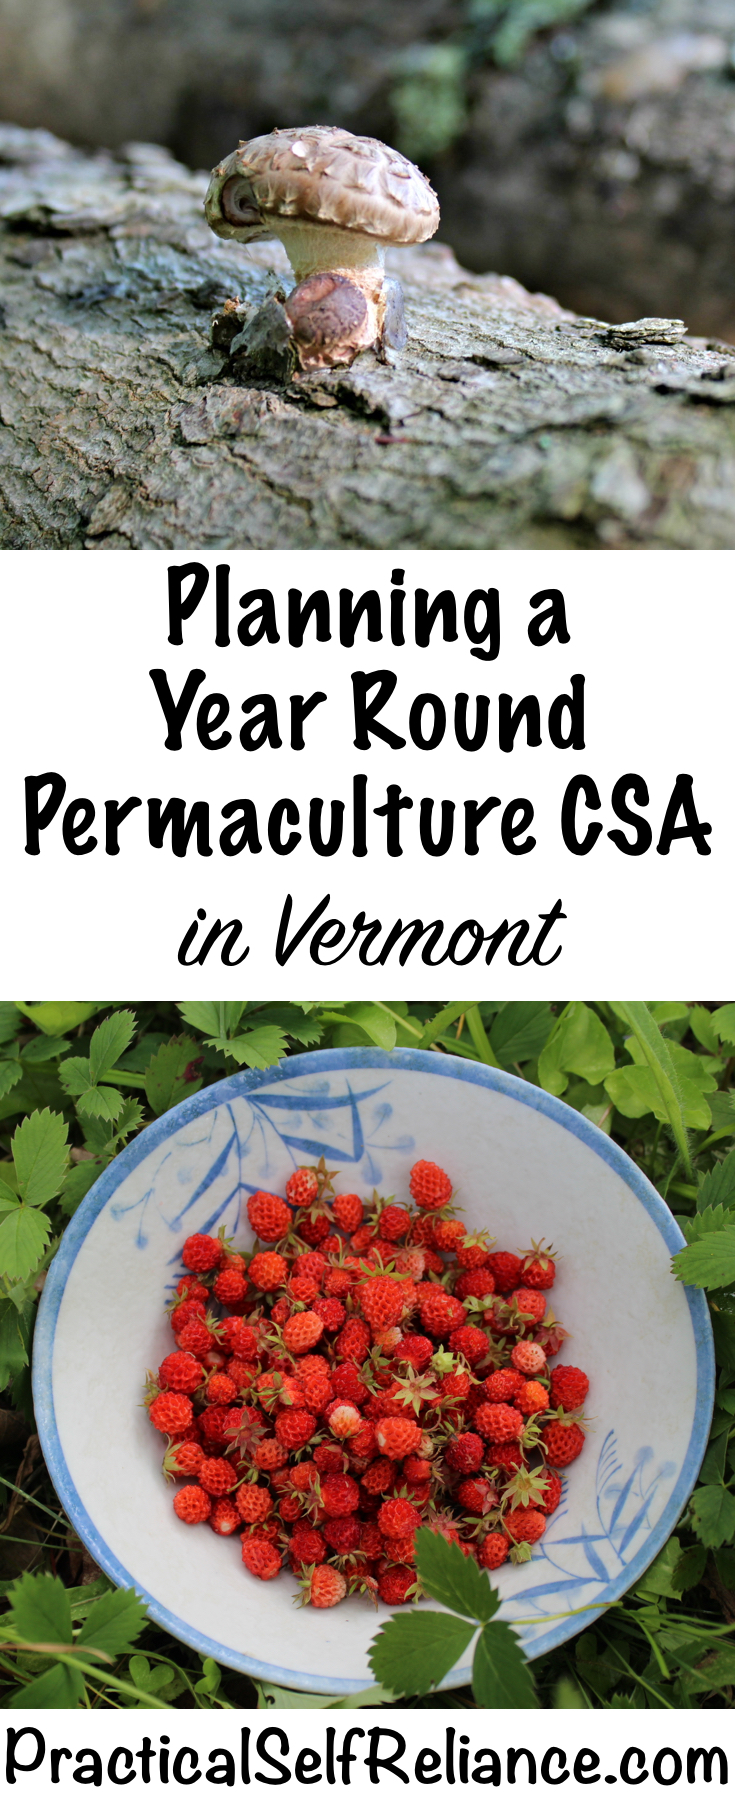 Planning a Year Round Permaculture CSA in Vermont